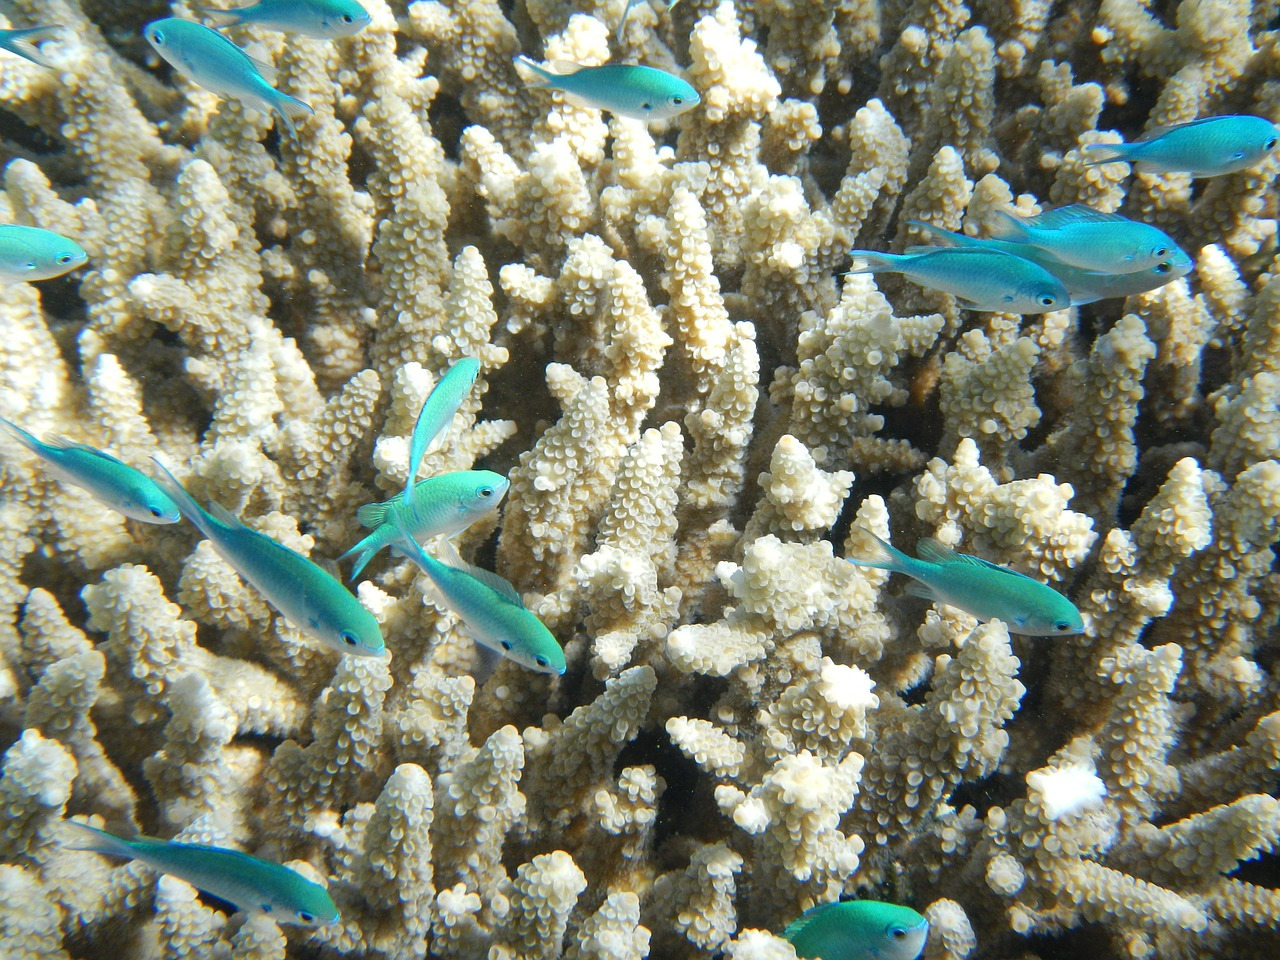 Image of fish and coral in the Great Barrier Reef